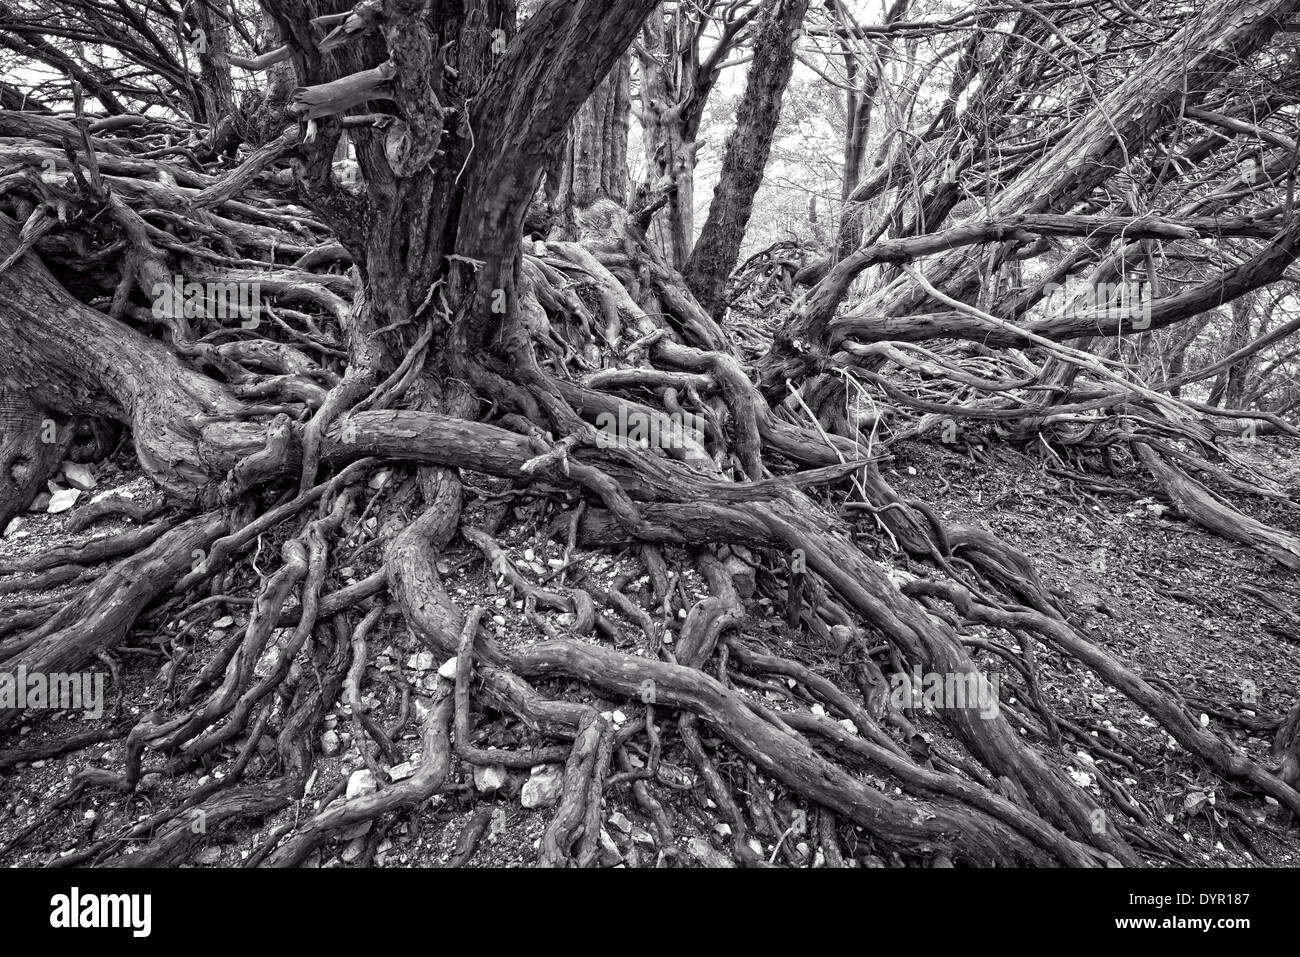 Old twisted tree roots - Stock Image